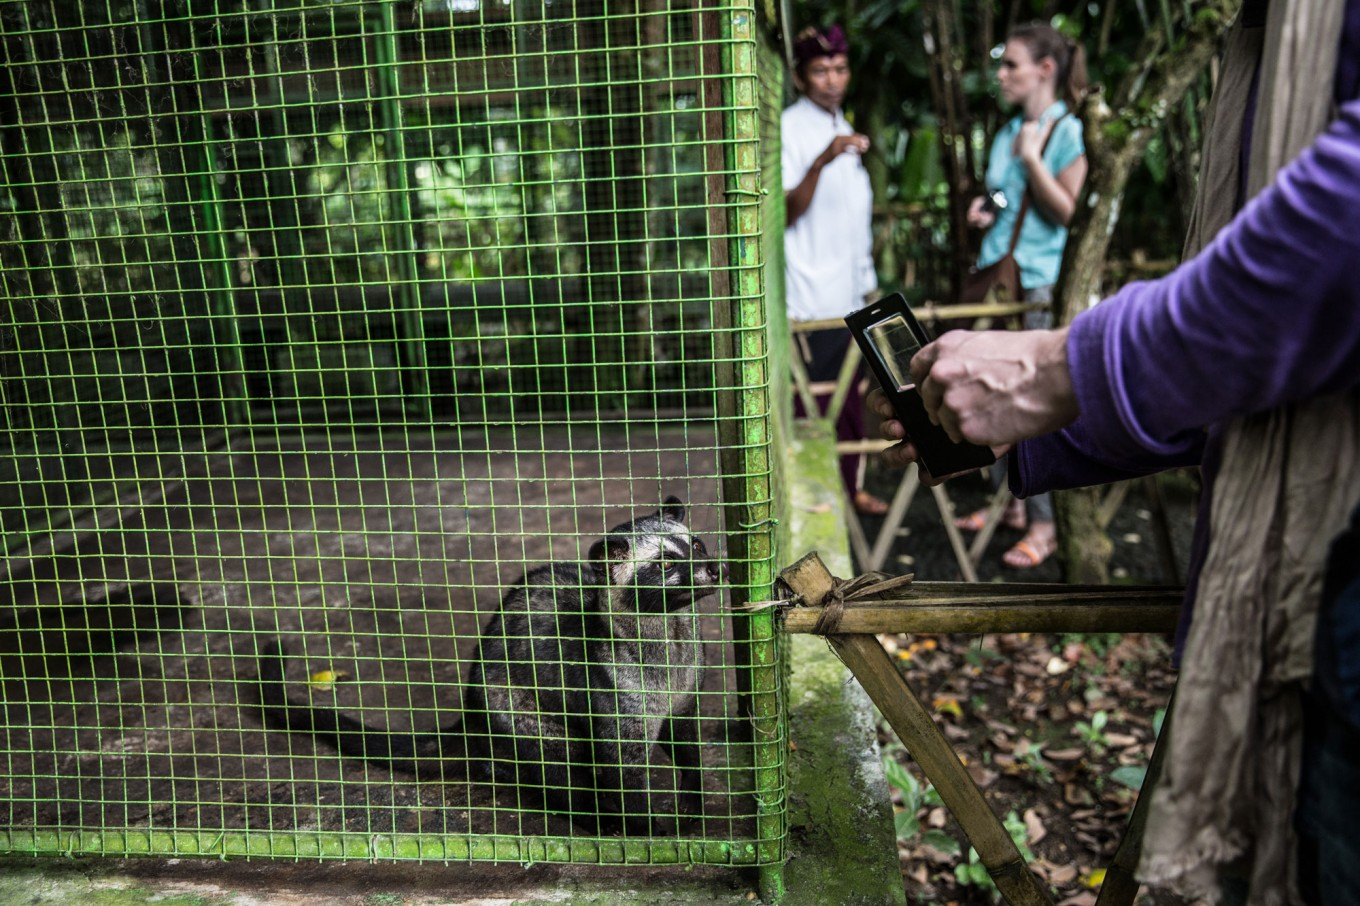 A tourist takes a picture of a civet cat in a cage at BAS coffee plantation in Tampak Siring, Bali. JP/Agung Parameswara